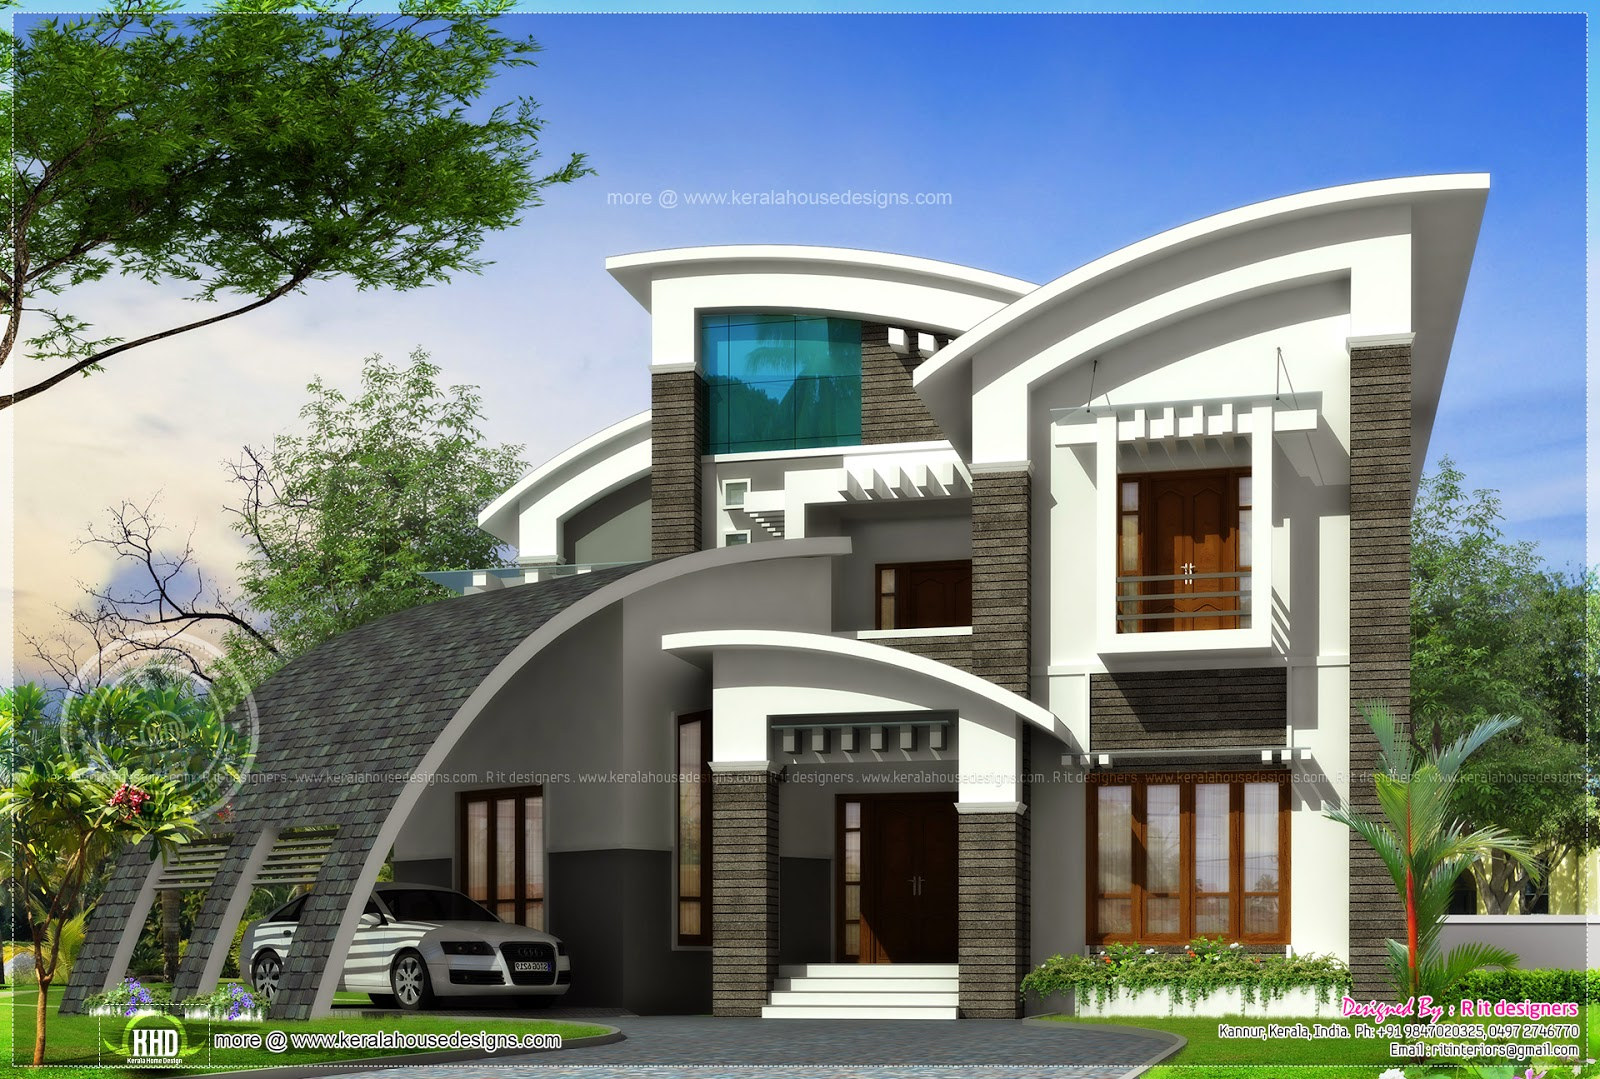 Super luxury ultra modern house design kerala home for Modern mansion designs